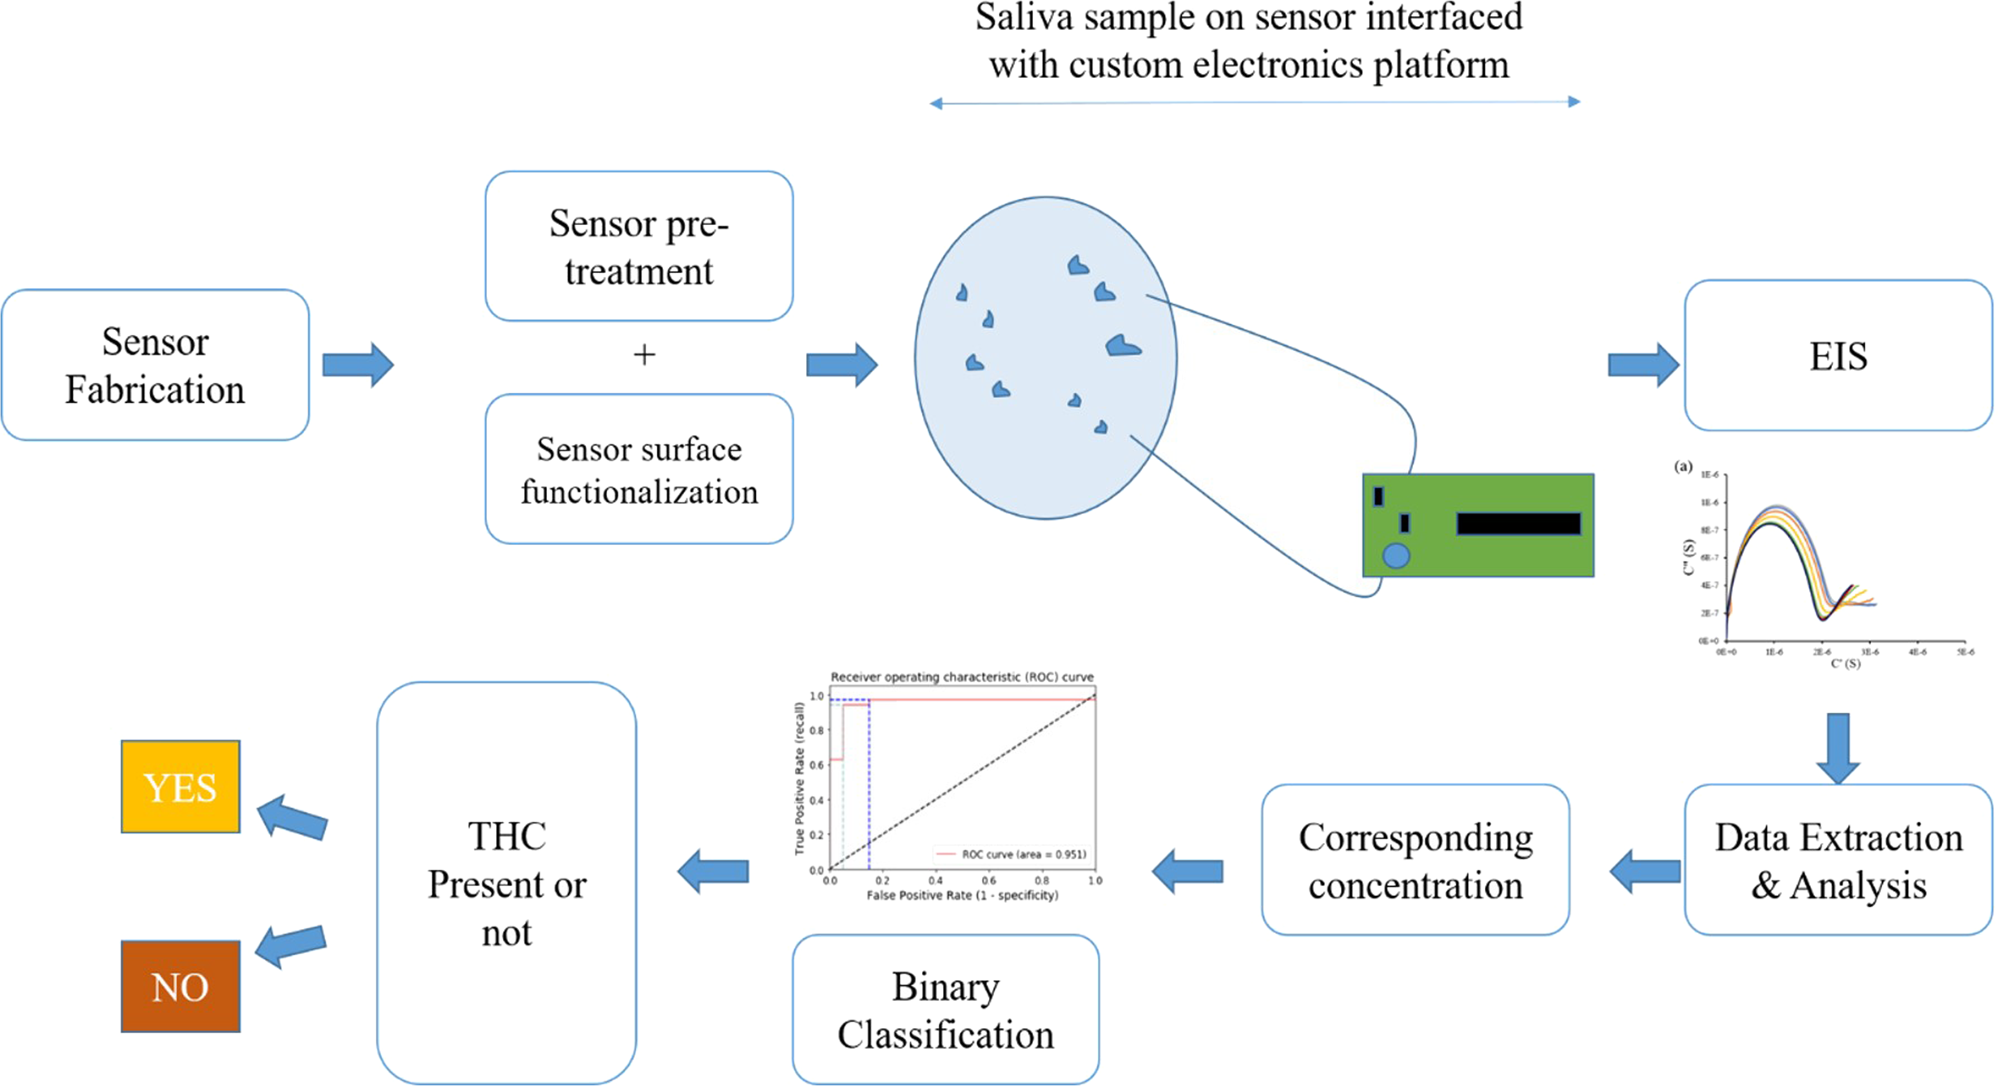 A Rapid Response Electrochemical Biosensor for Detecting Thc